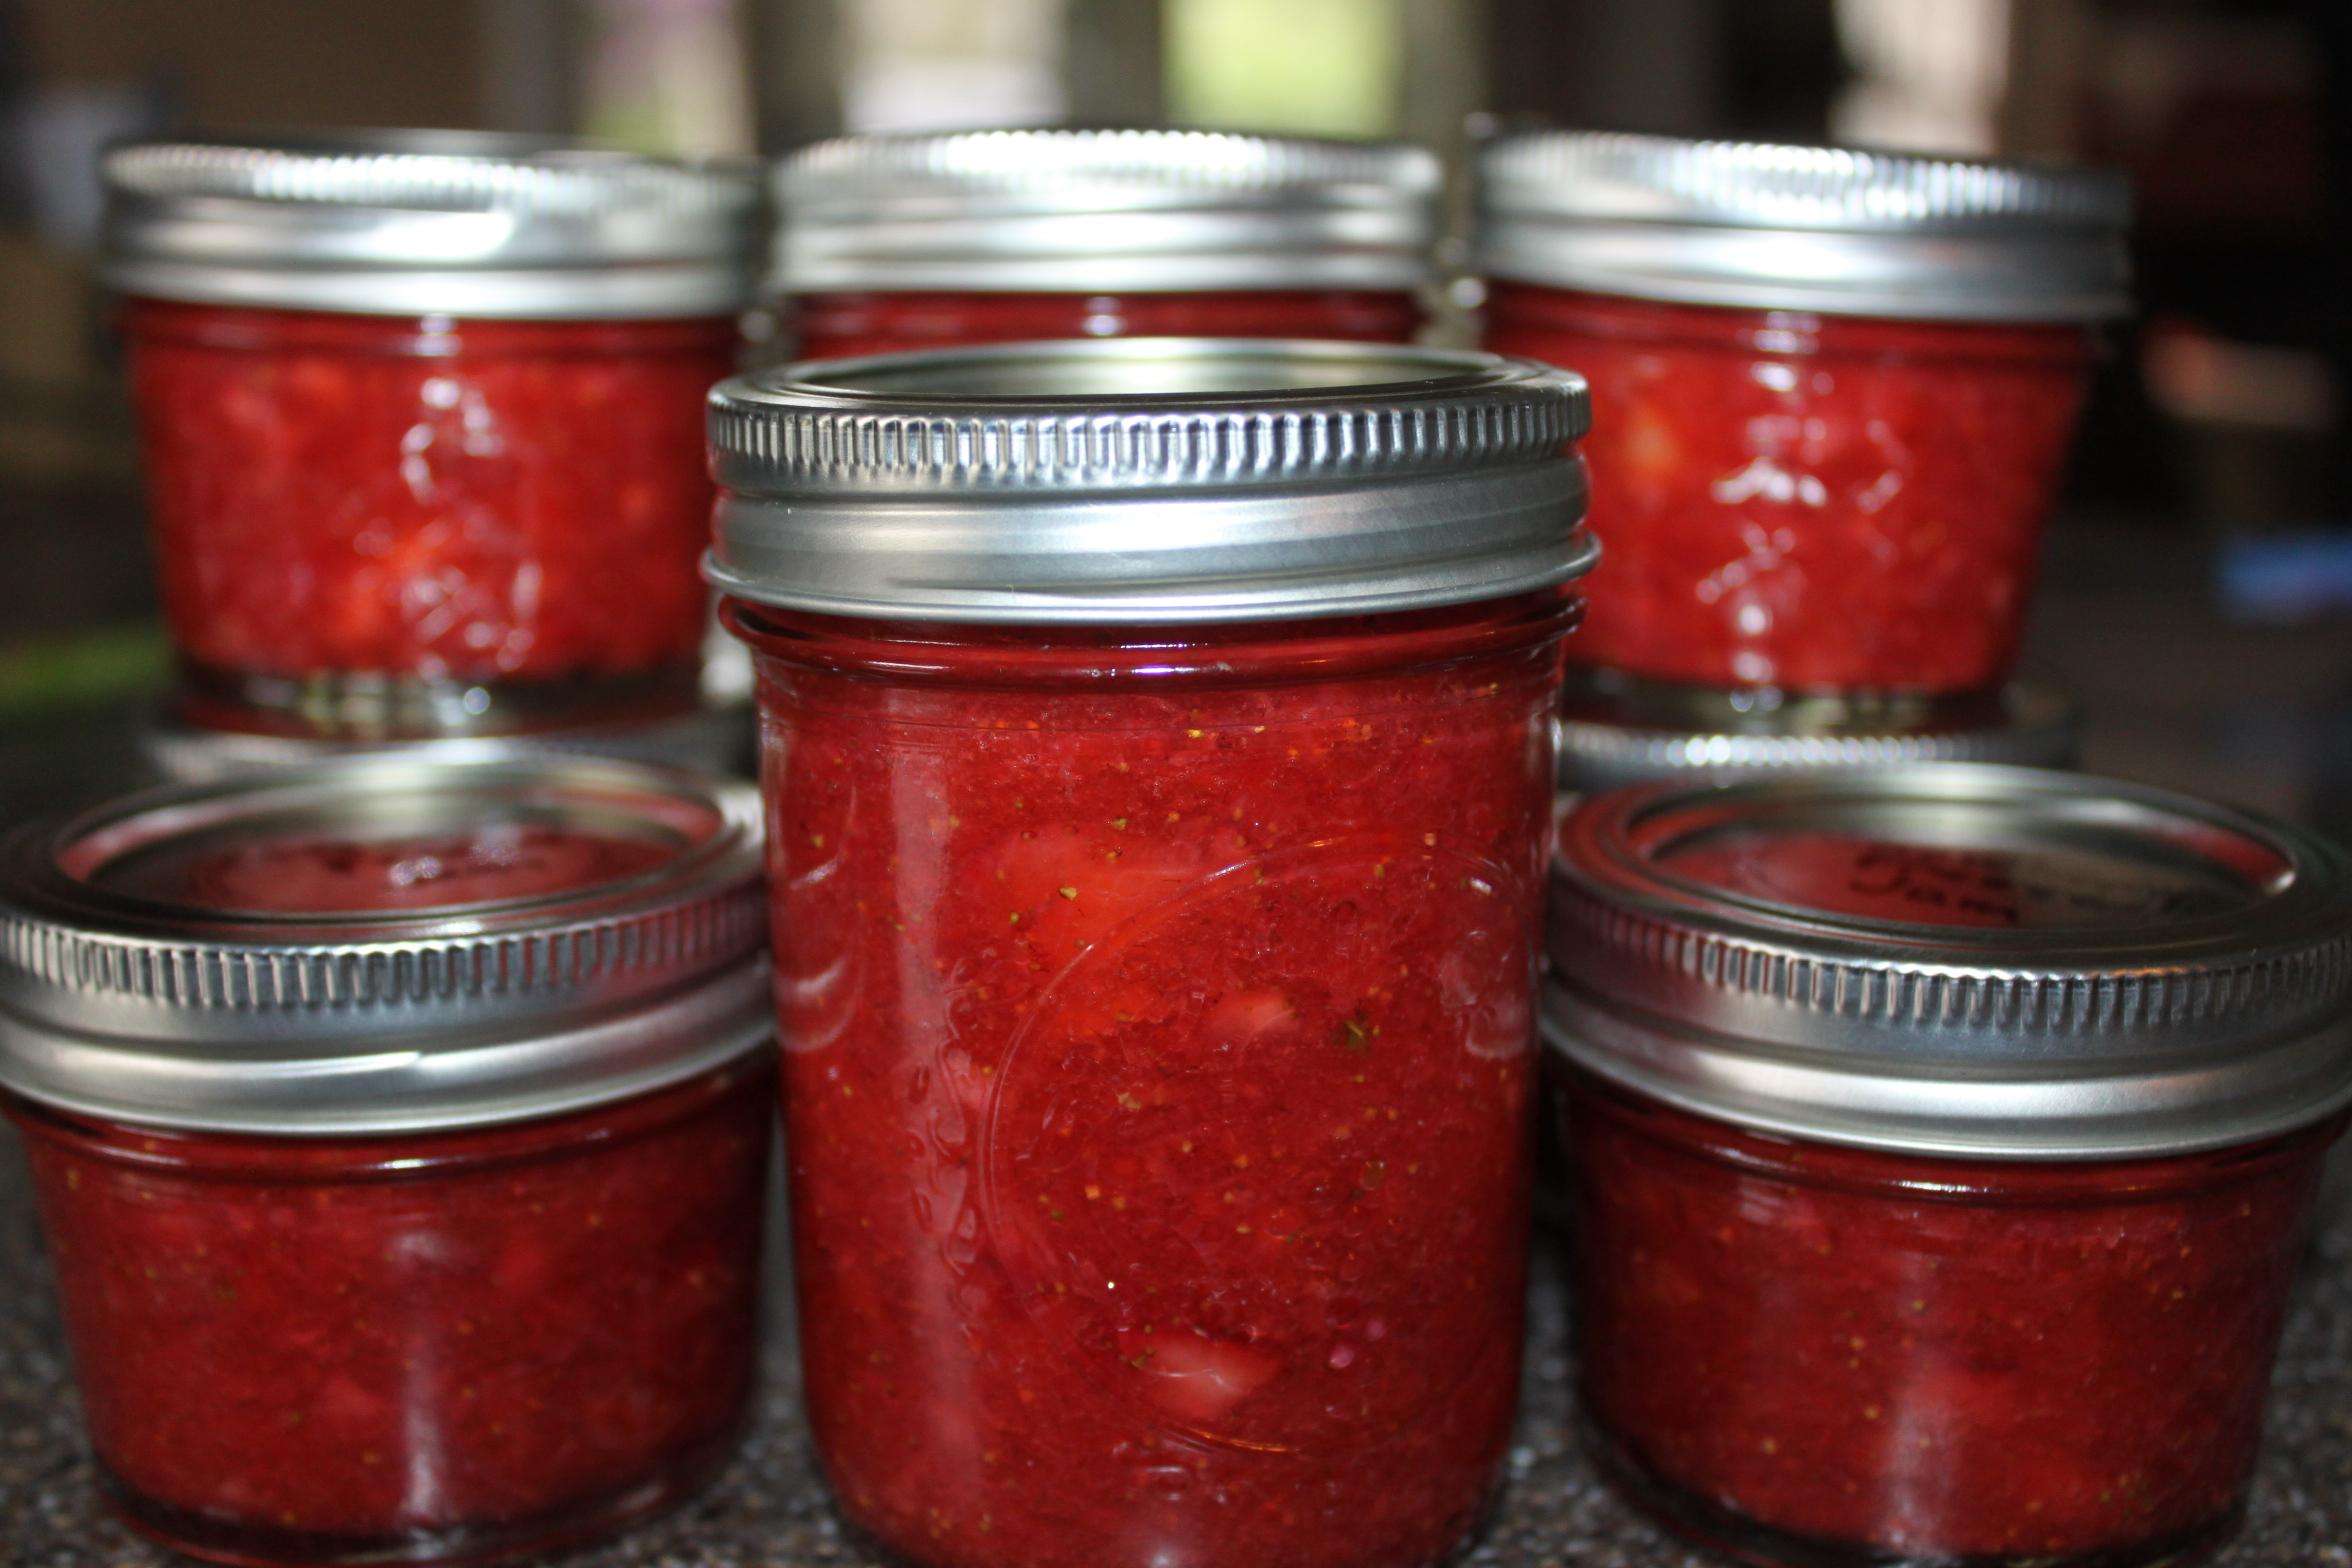 Strawberry Freezer Jam Recipe No Cooking Or Canning Required Old World Garden Farms